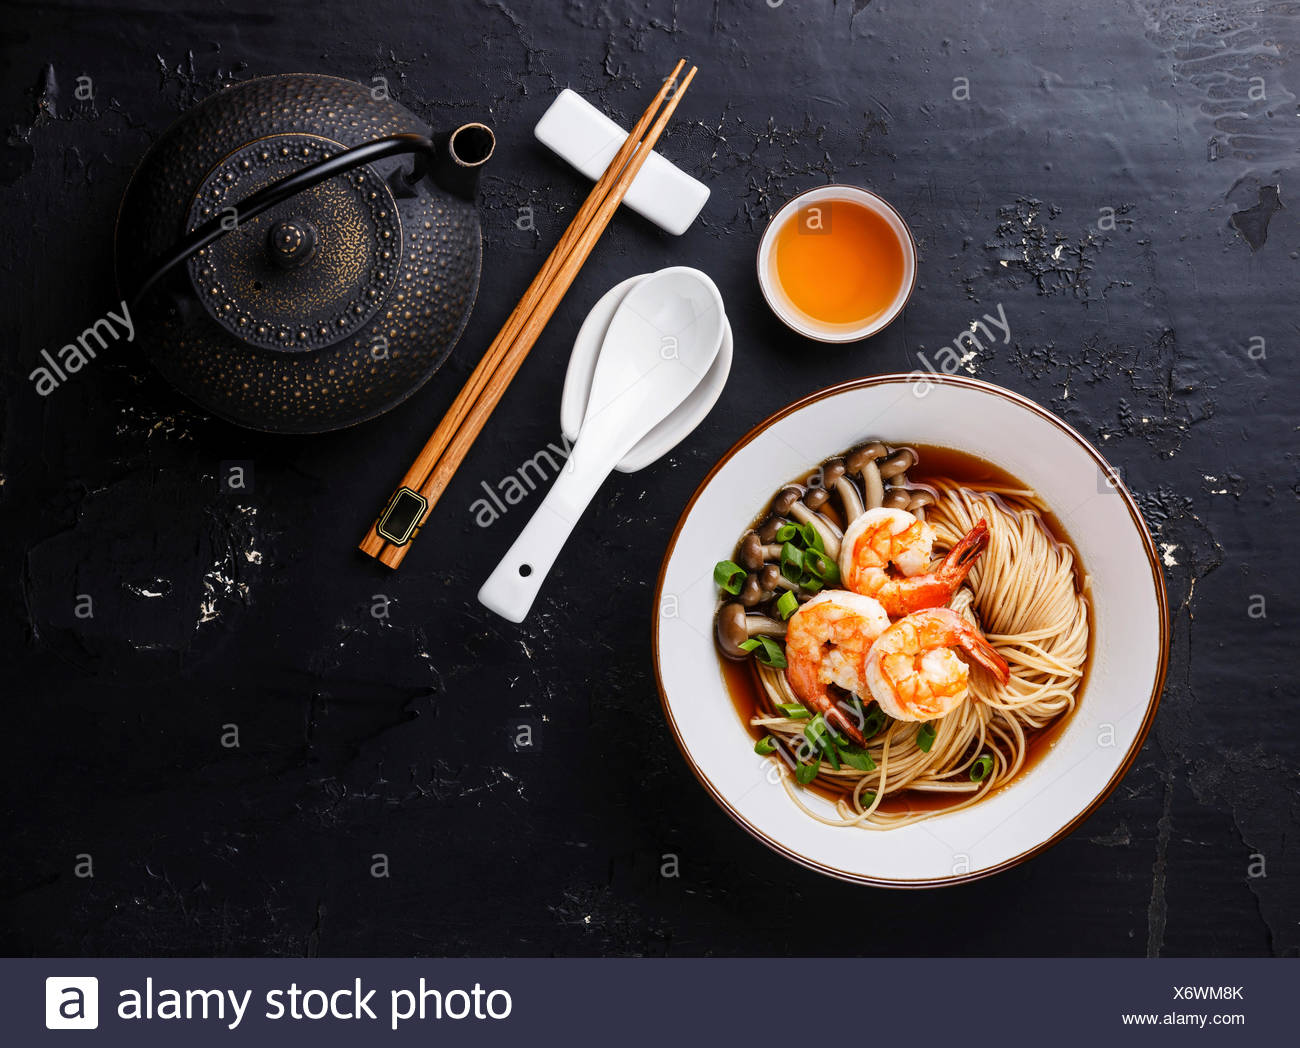 Asian Ramen noodles with broth in bowl serving size and Tea on dark background - Stock Image